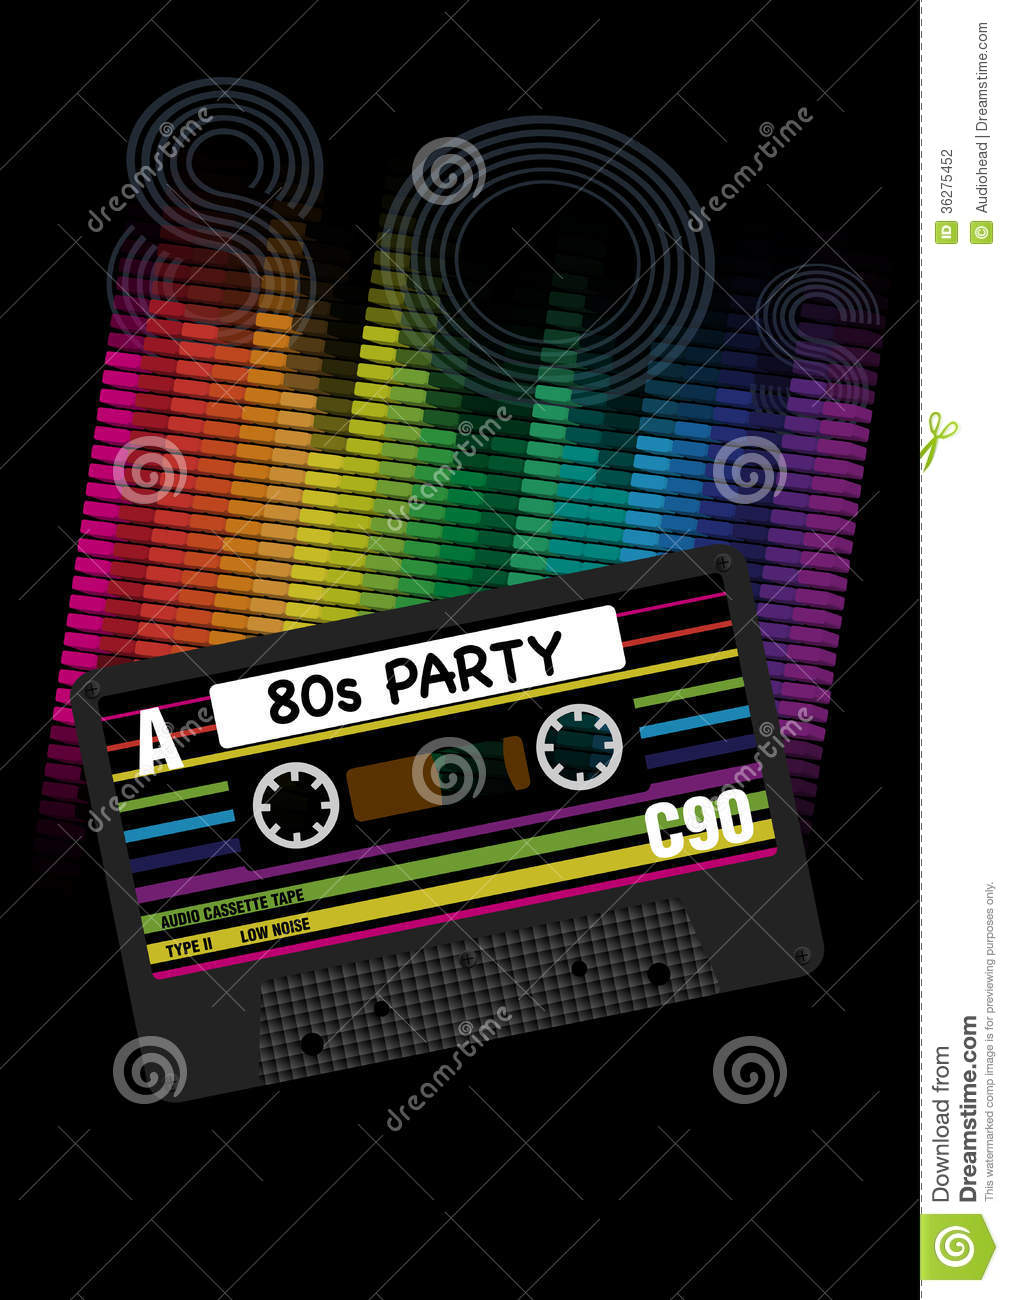 3d Vinyl Records Wallpaper Vector 80s Party Background Stock Photography Image